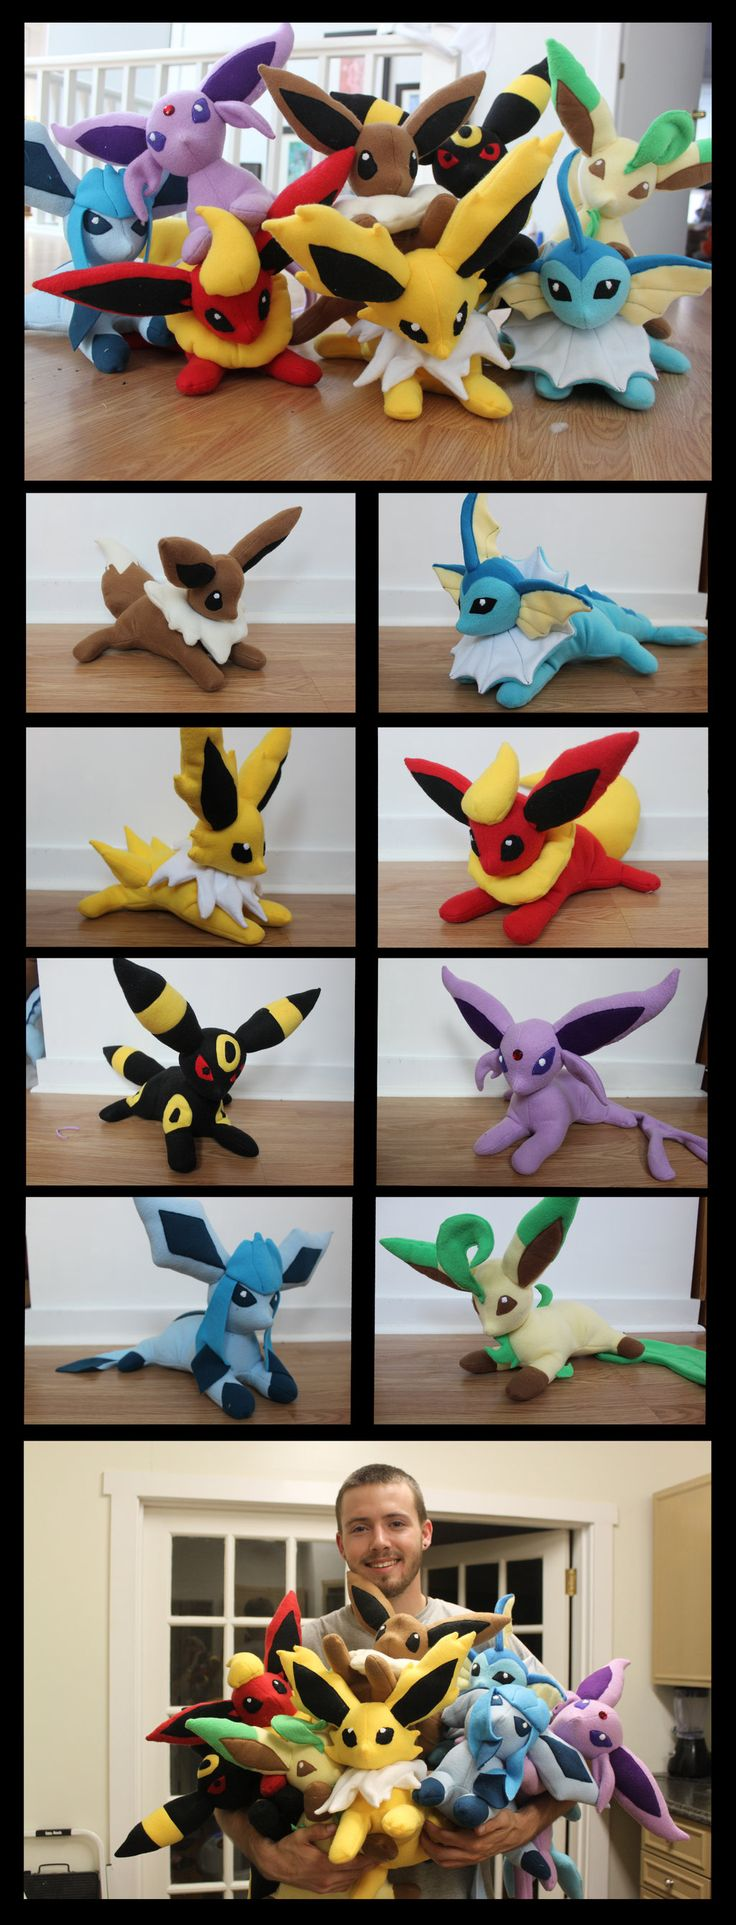 Eeveelutions Plushies by NsomniacArtist.deviantart.com